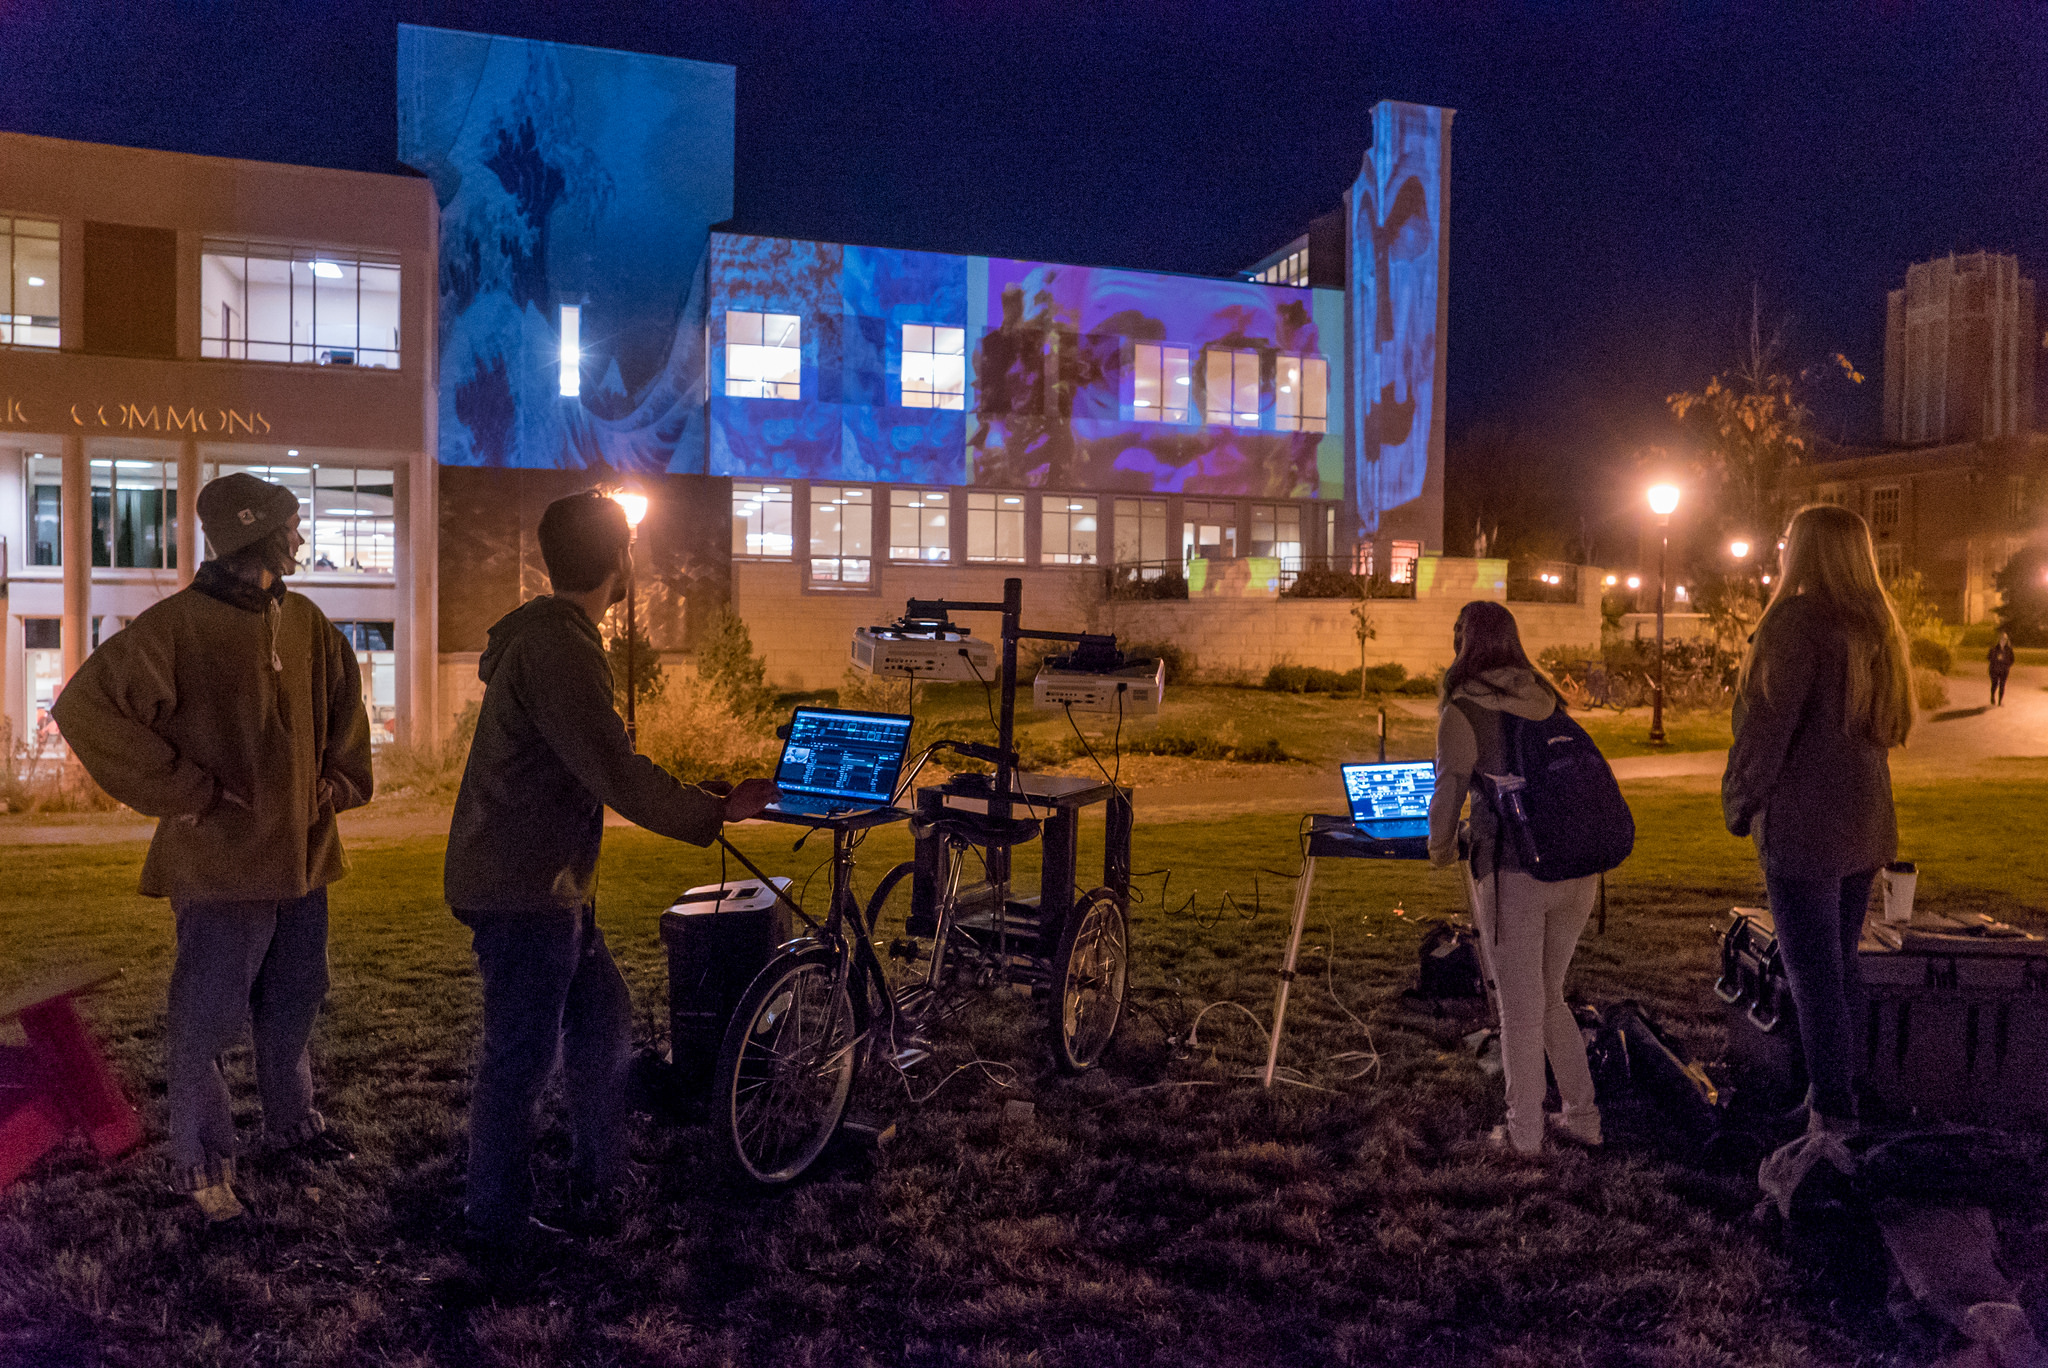 students projecting art on building